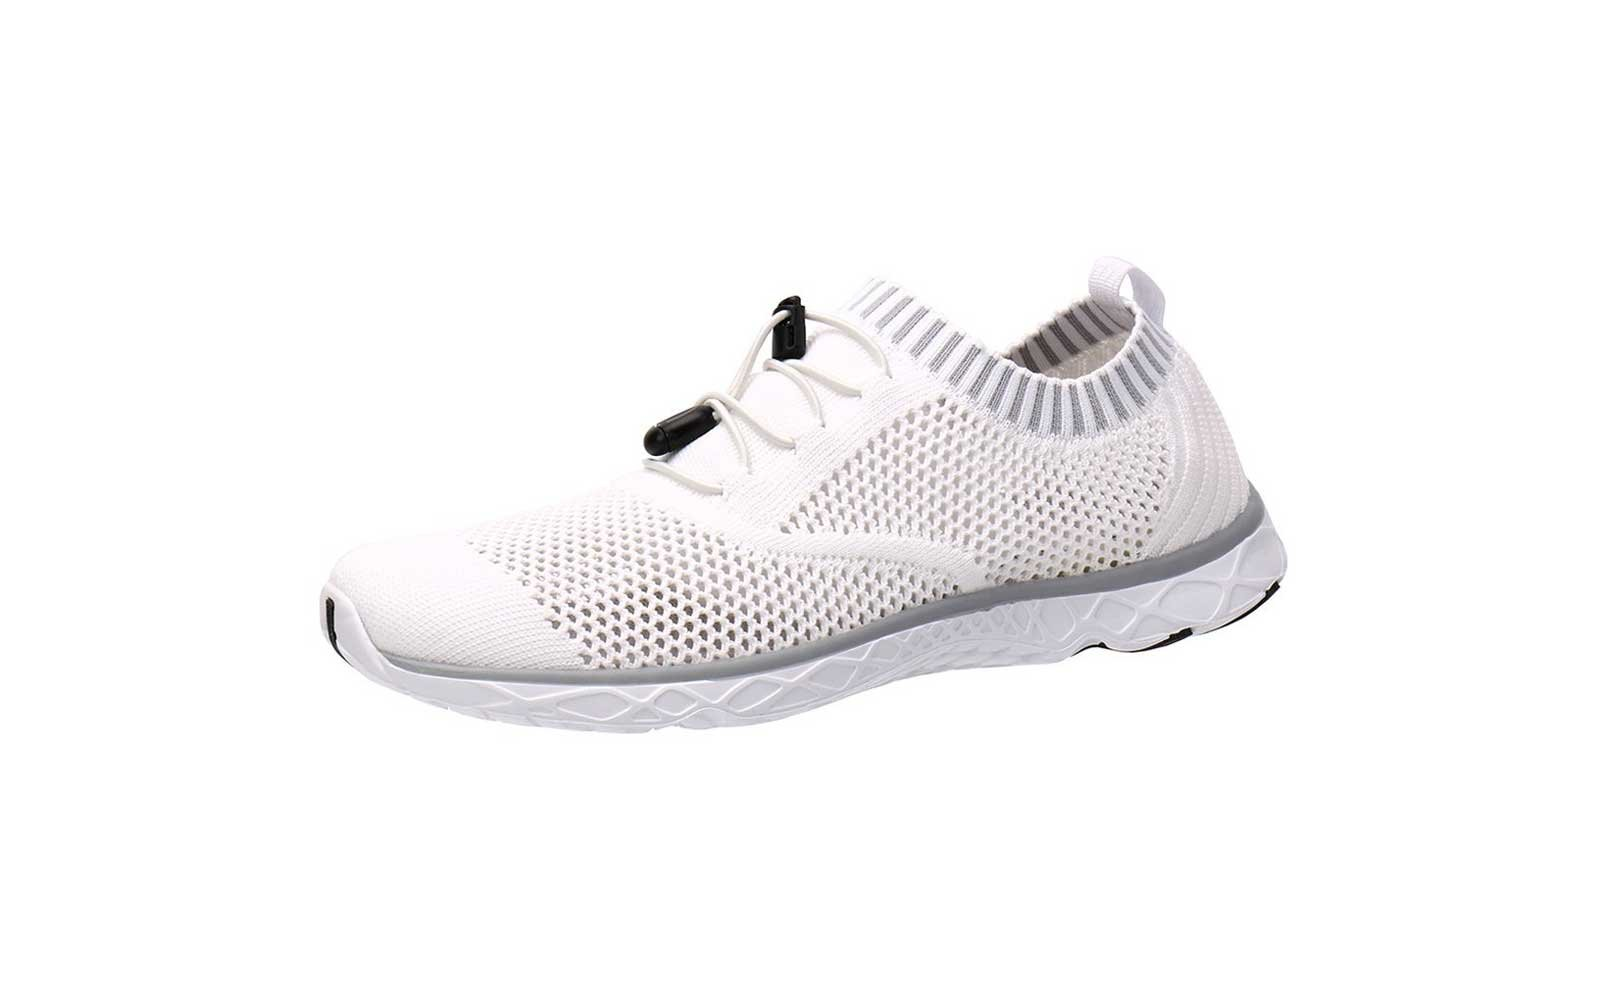 dfcebb5d282c The Best Men s Water Shoes for 2019